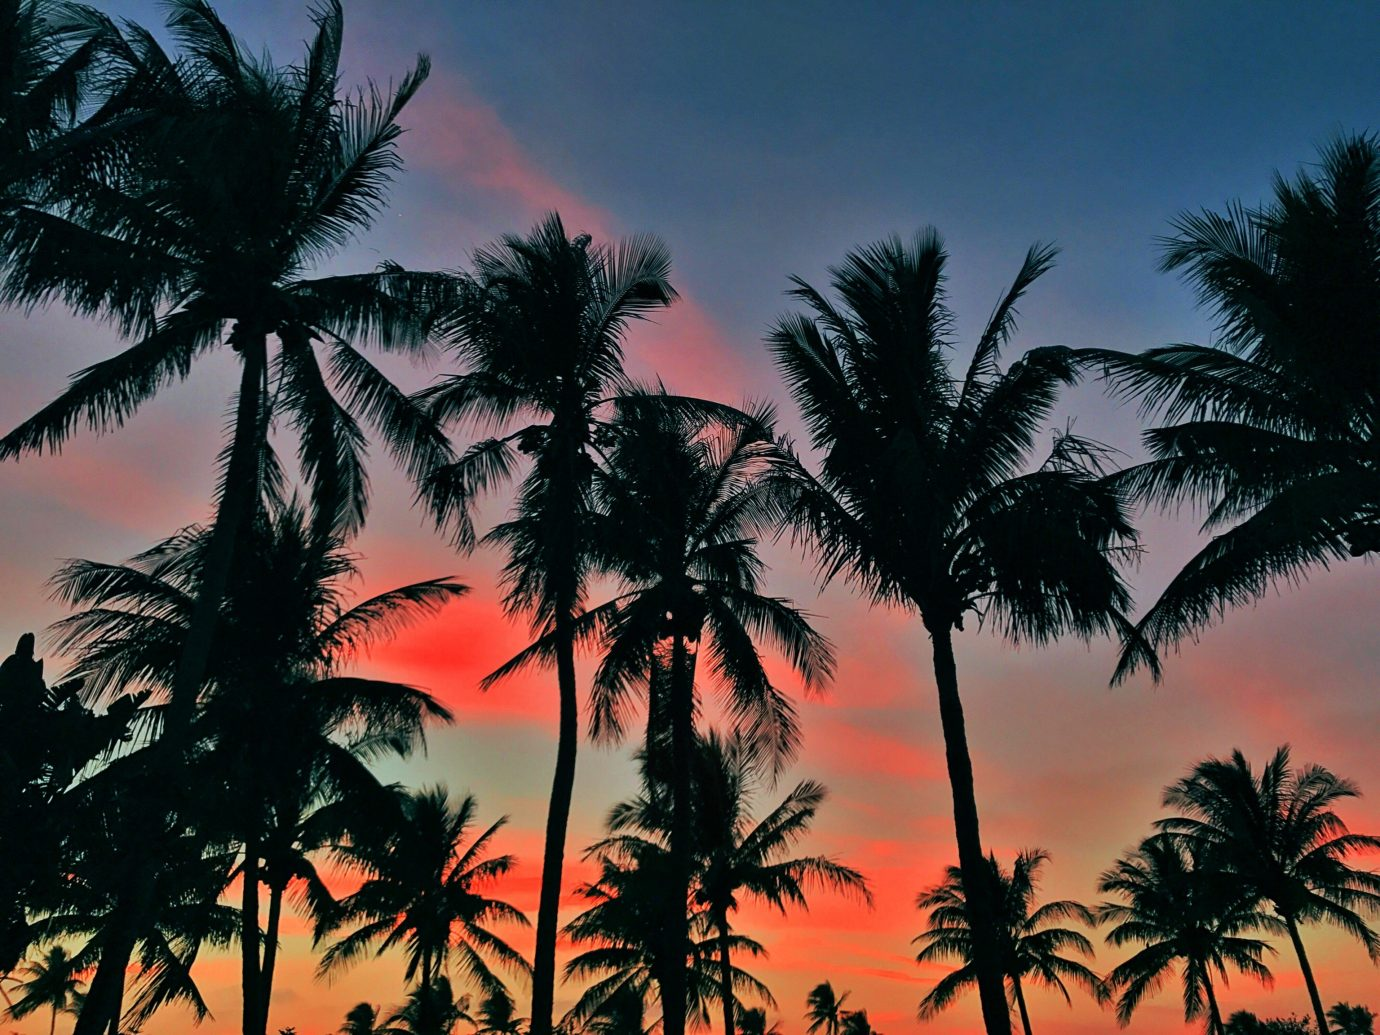 Trip Ideas tree palm plant Sunset sky outdoor palm family setting arecales land plant woody plant tropics savanna dusk sunrise flowering plant dawn field beautiful colorful lined